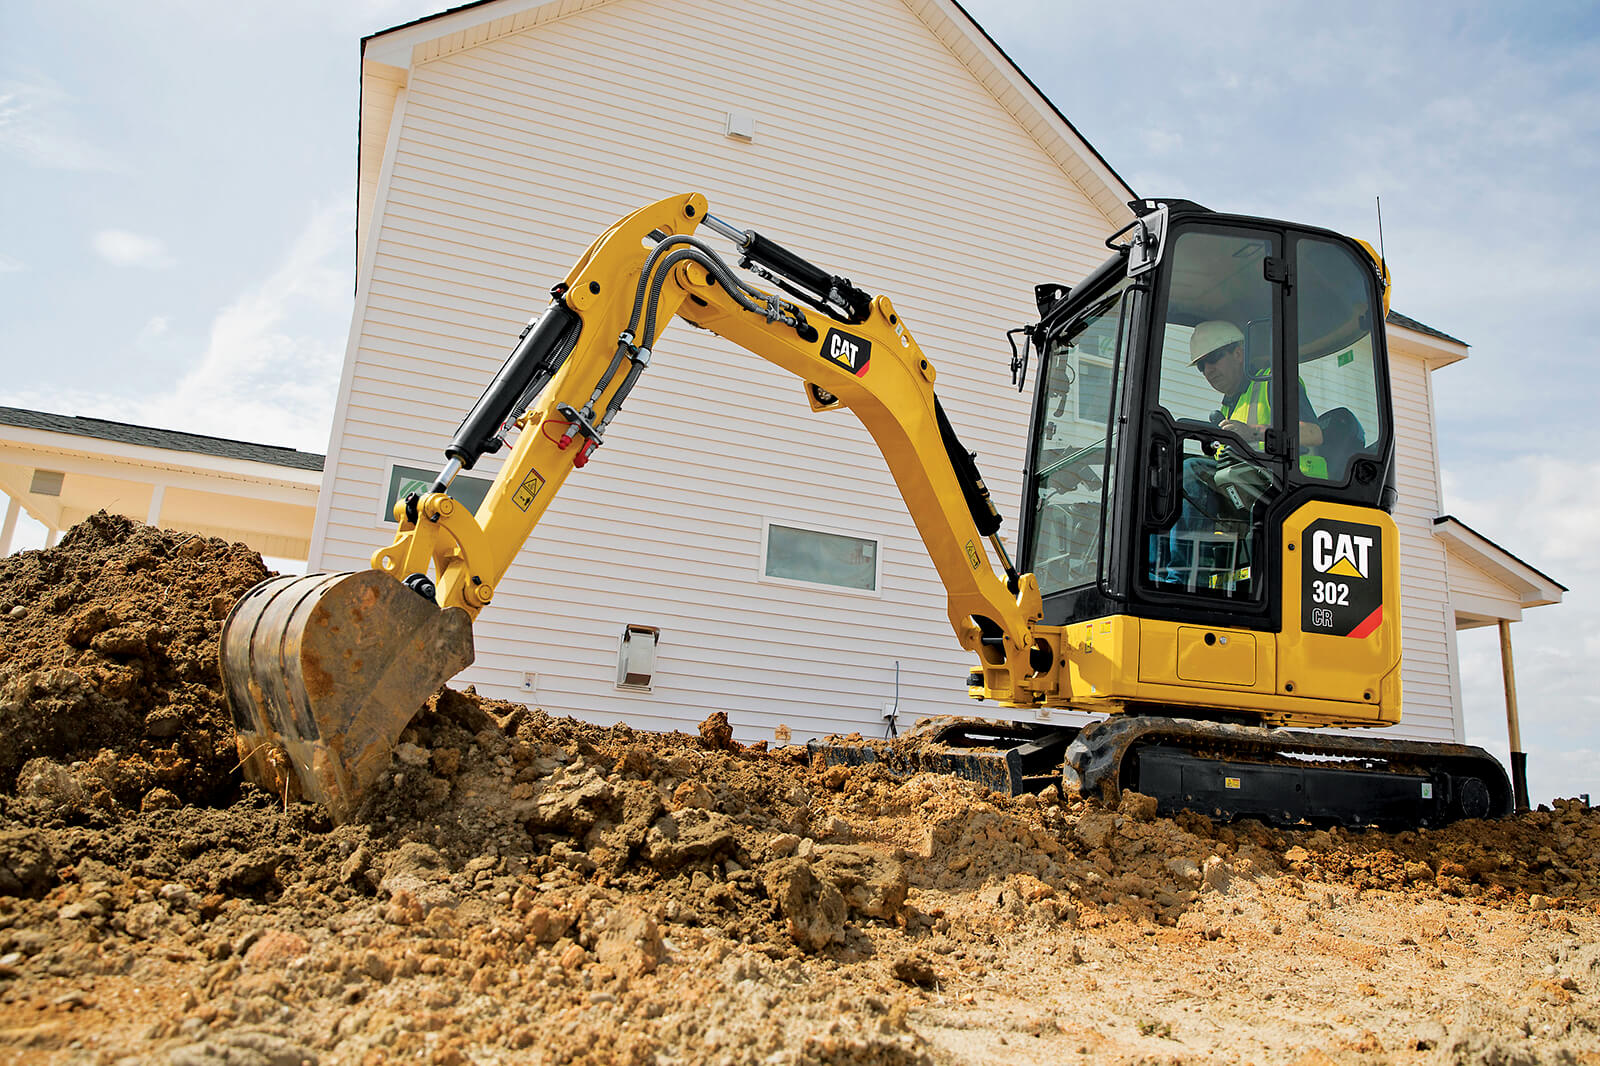 mini excavator working beside a house